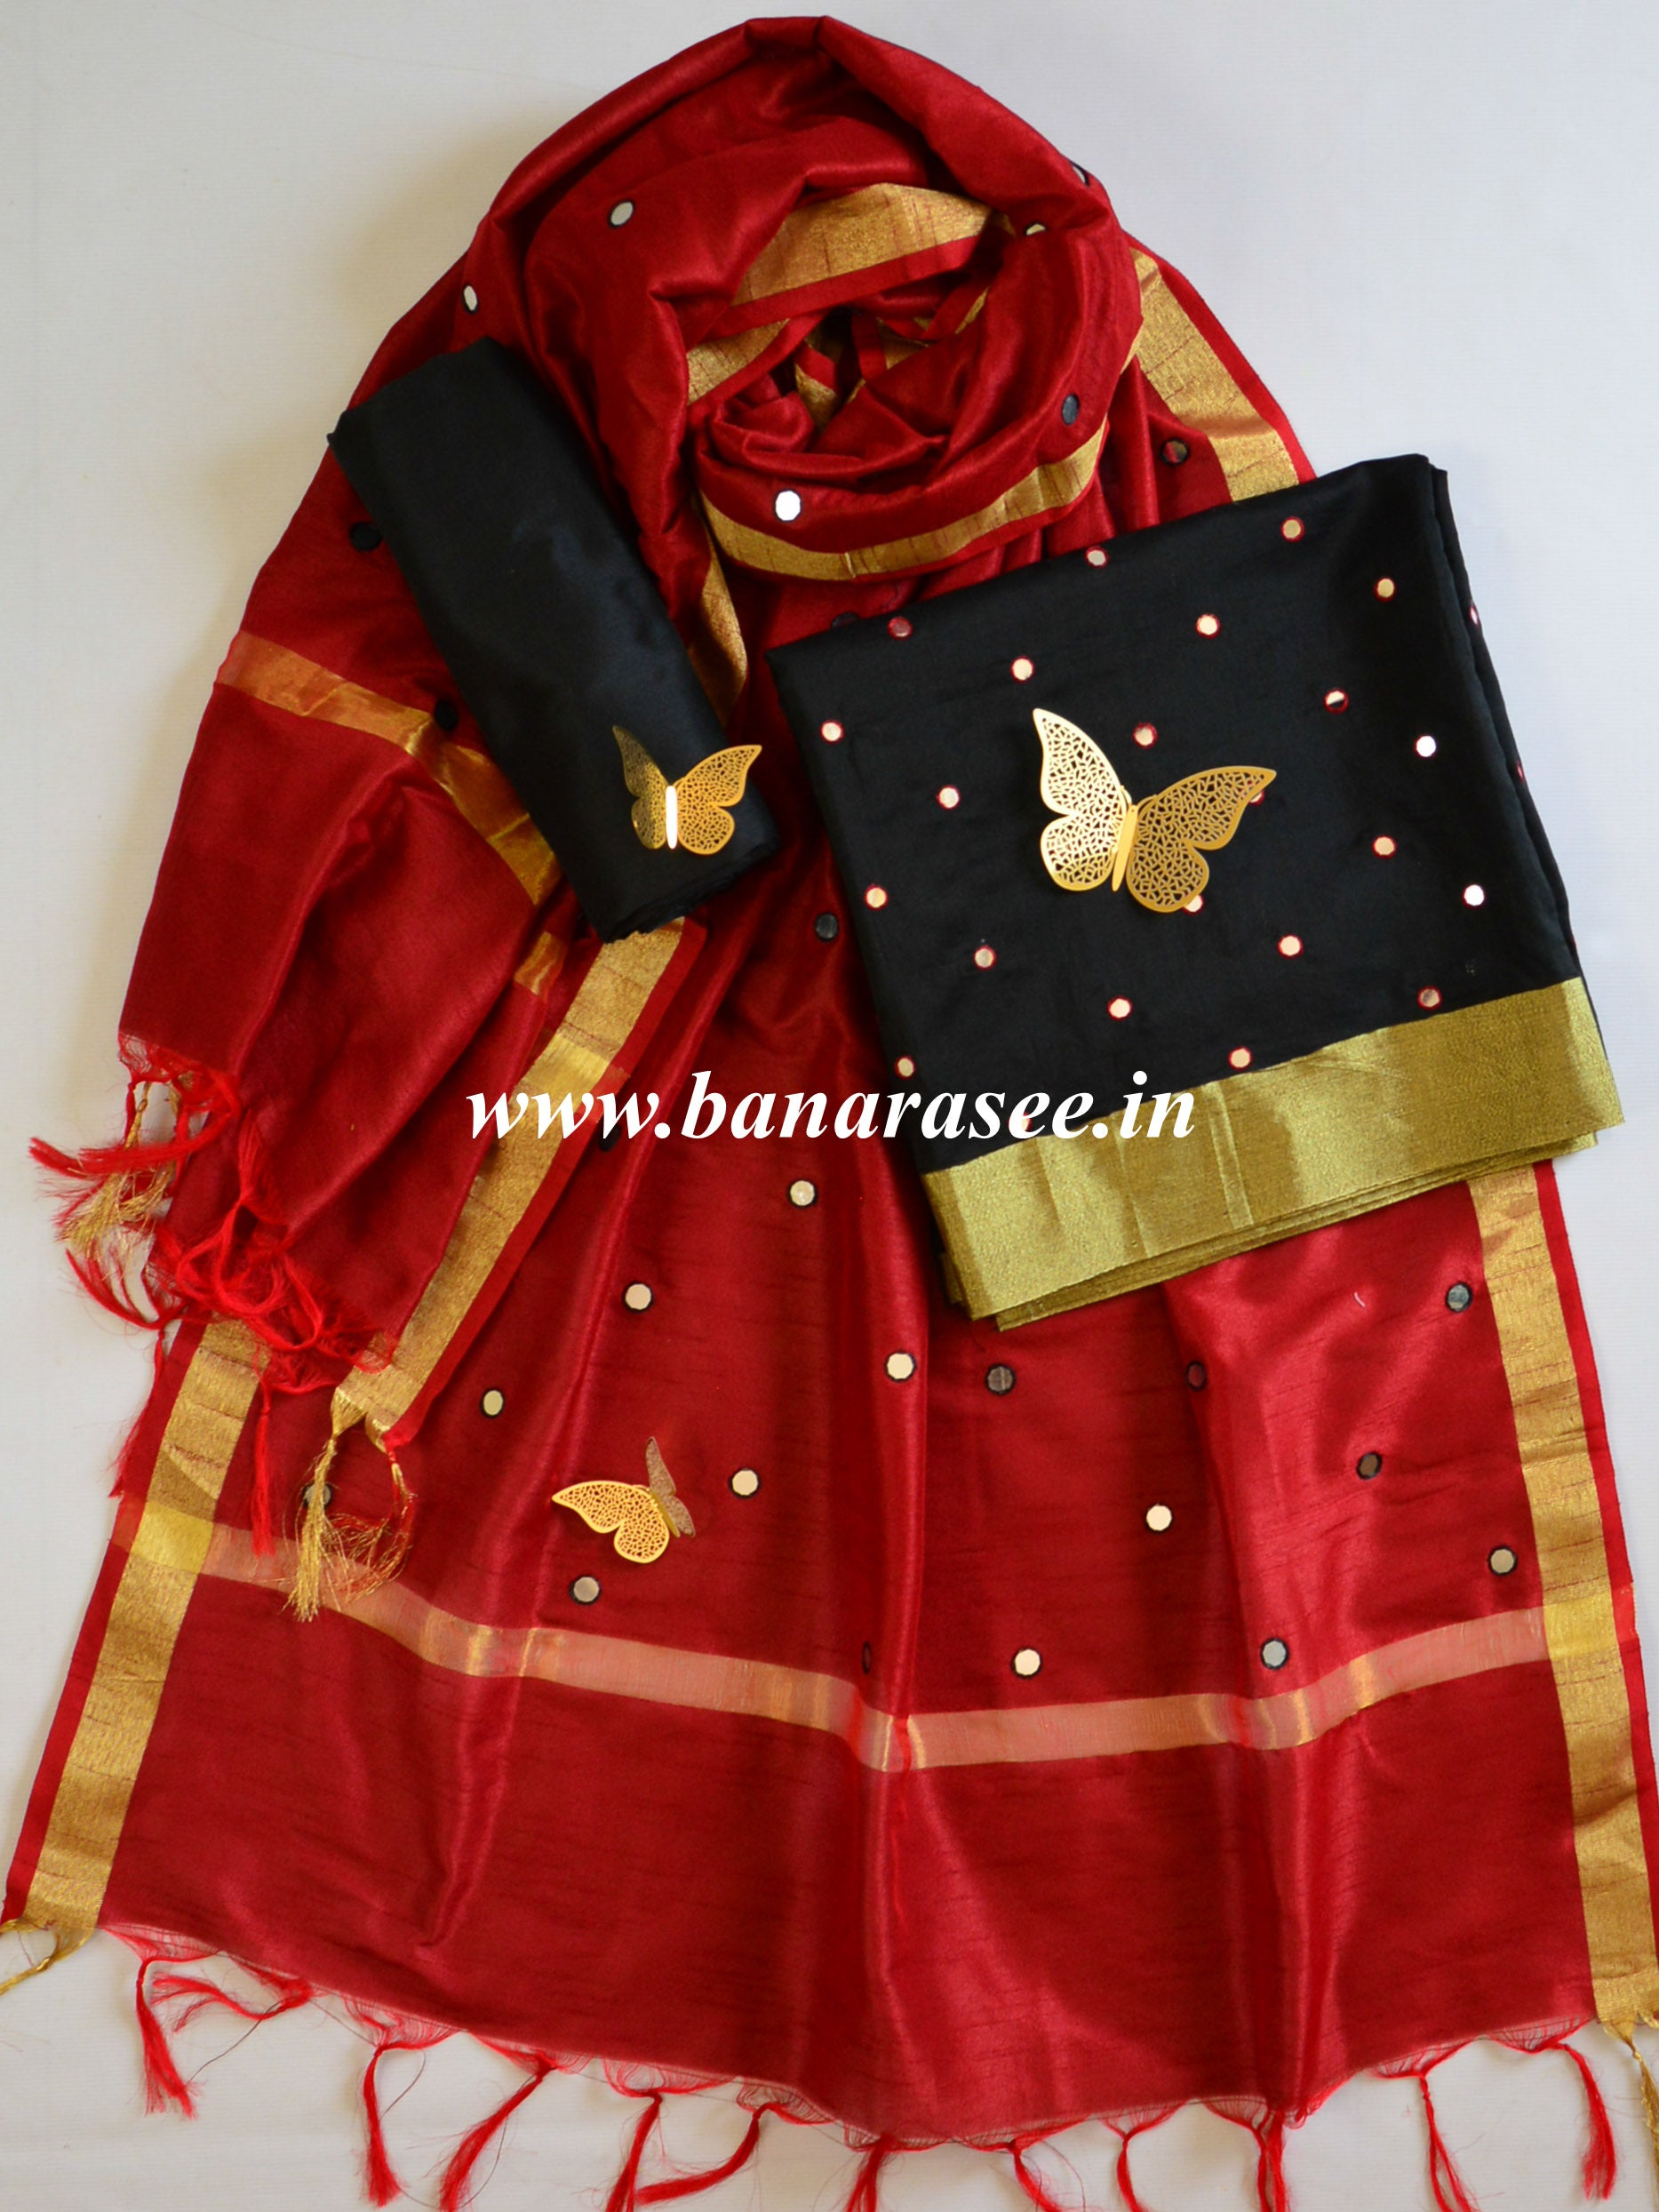 Banarasee Chanderi Cotton Mirror Work Salwar Kameez Dupatta Set-Black & Maroon